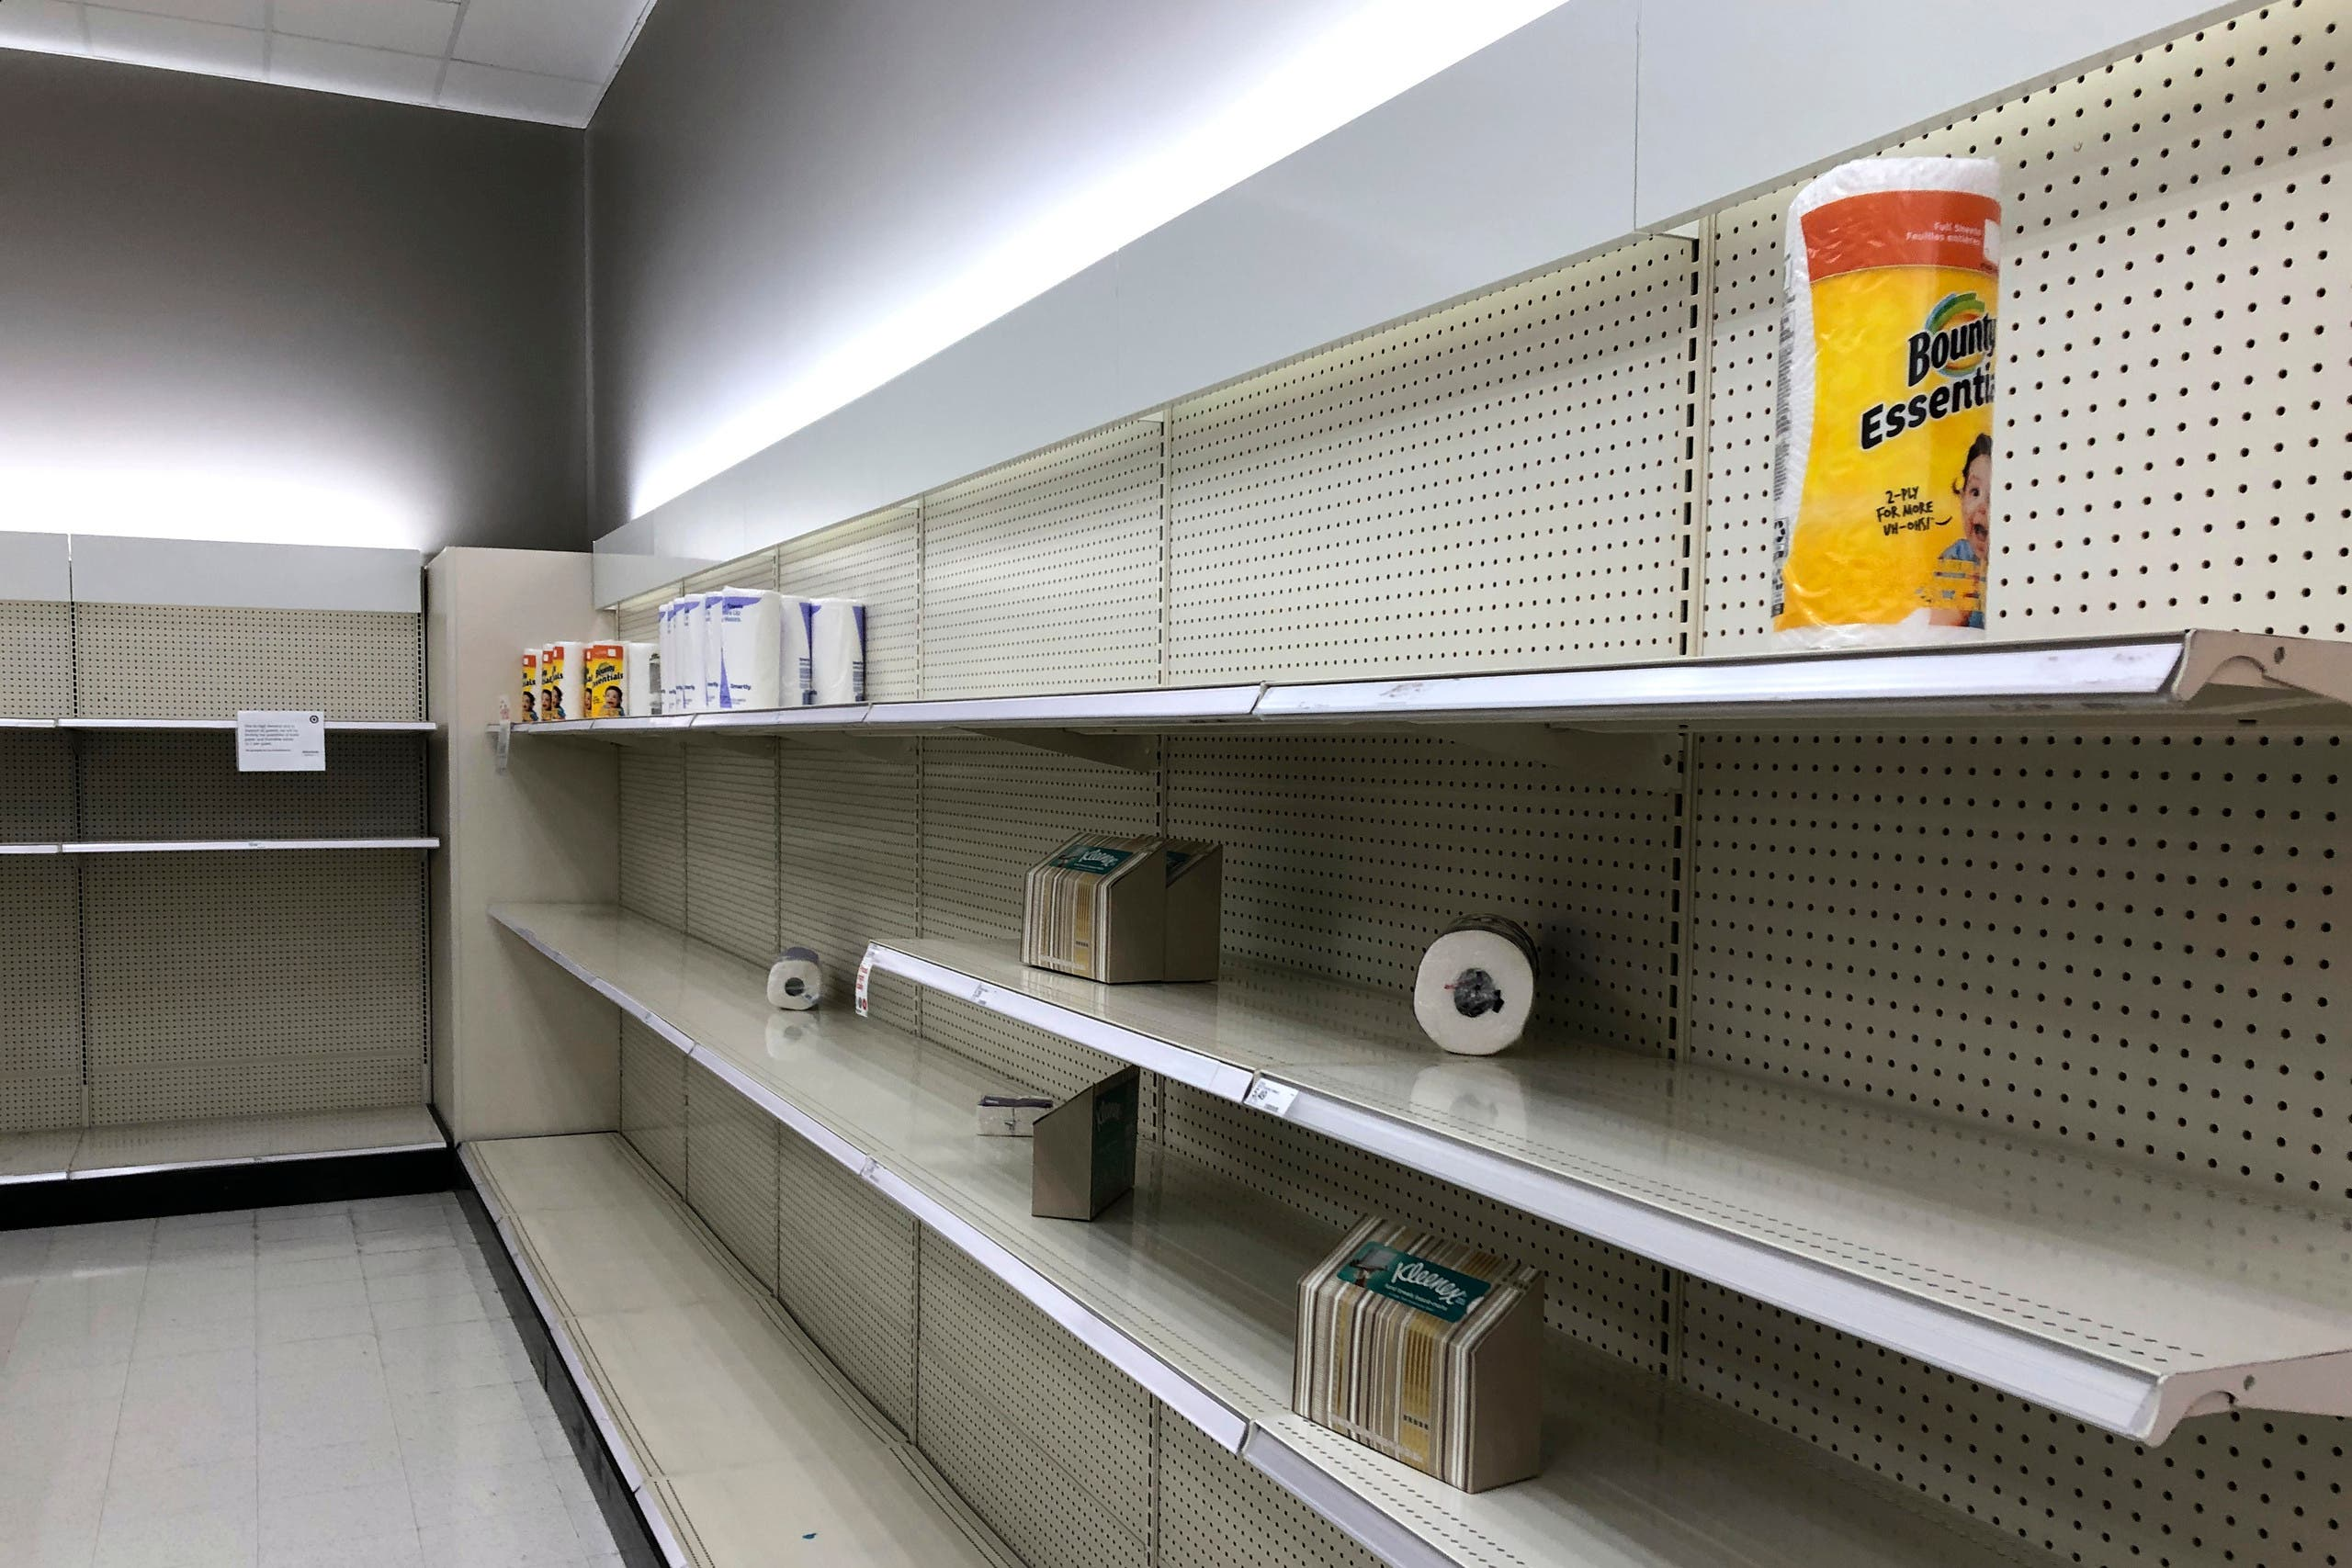 Shoppers walk through nearly empty shelves that usually hold toilet paper and paper towels, on March 14, 2020, in a Target store in Olympia, Washington. (AP)